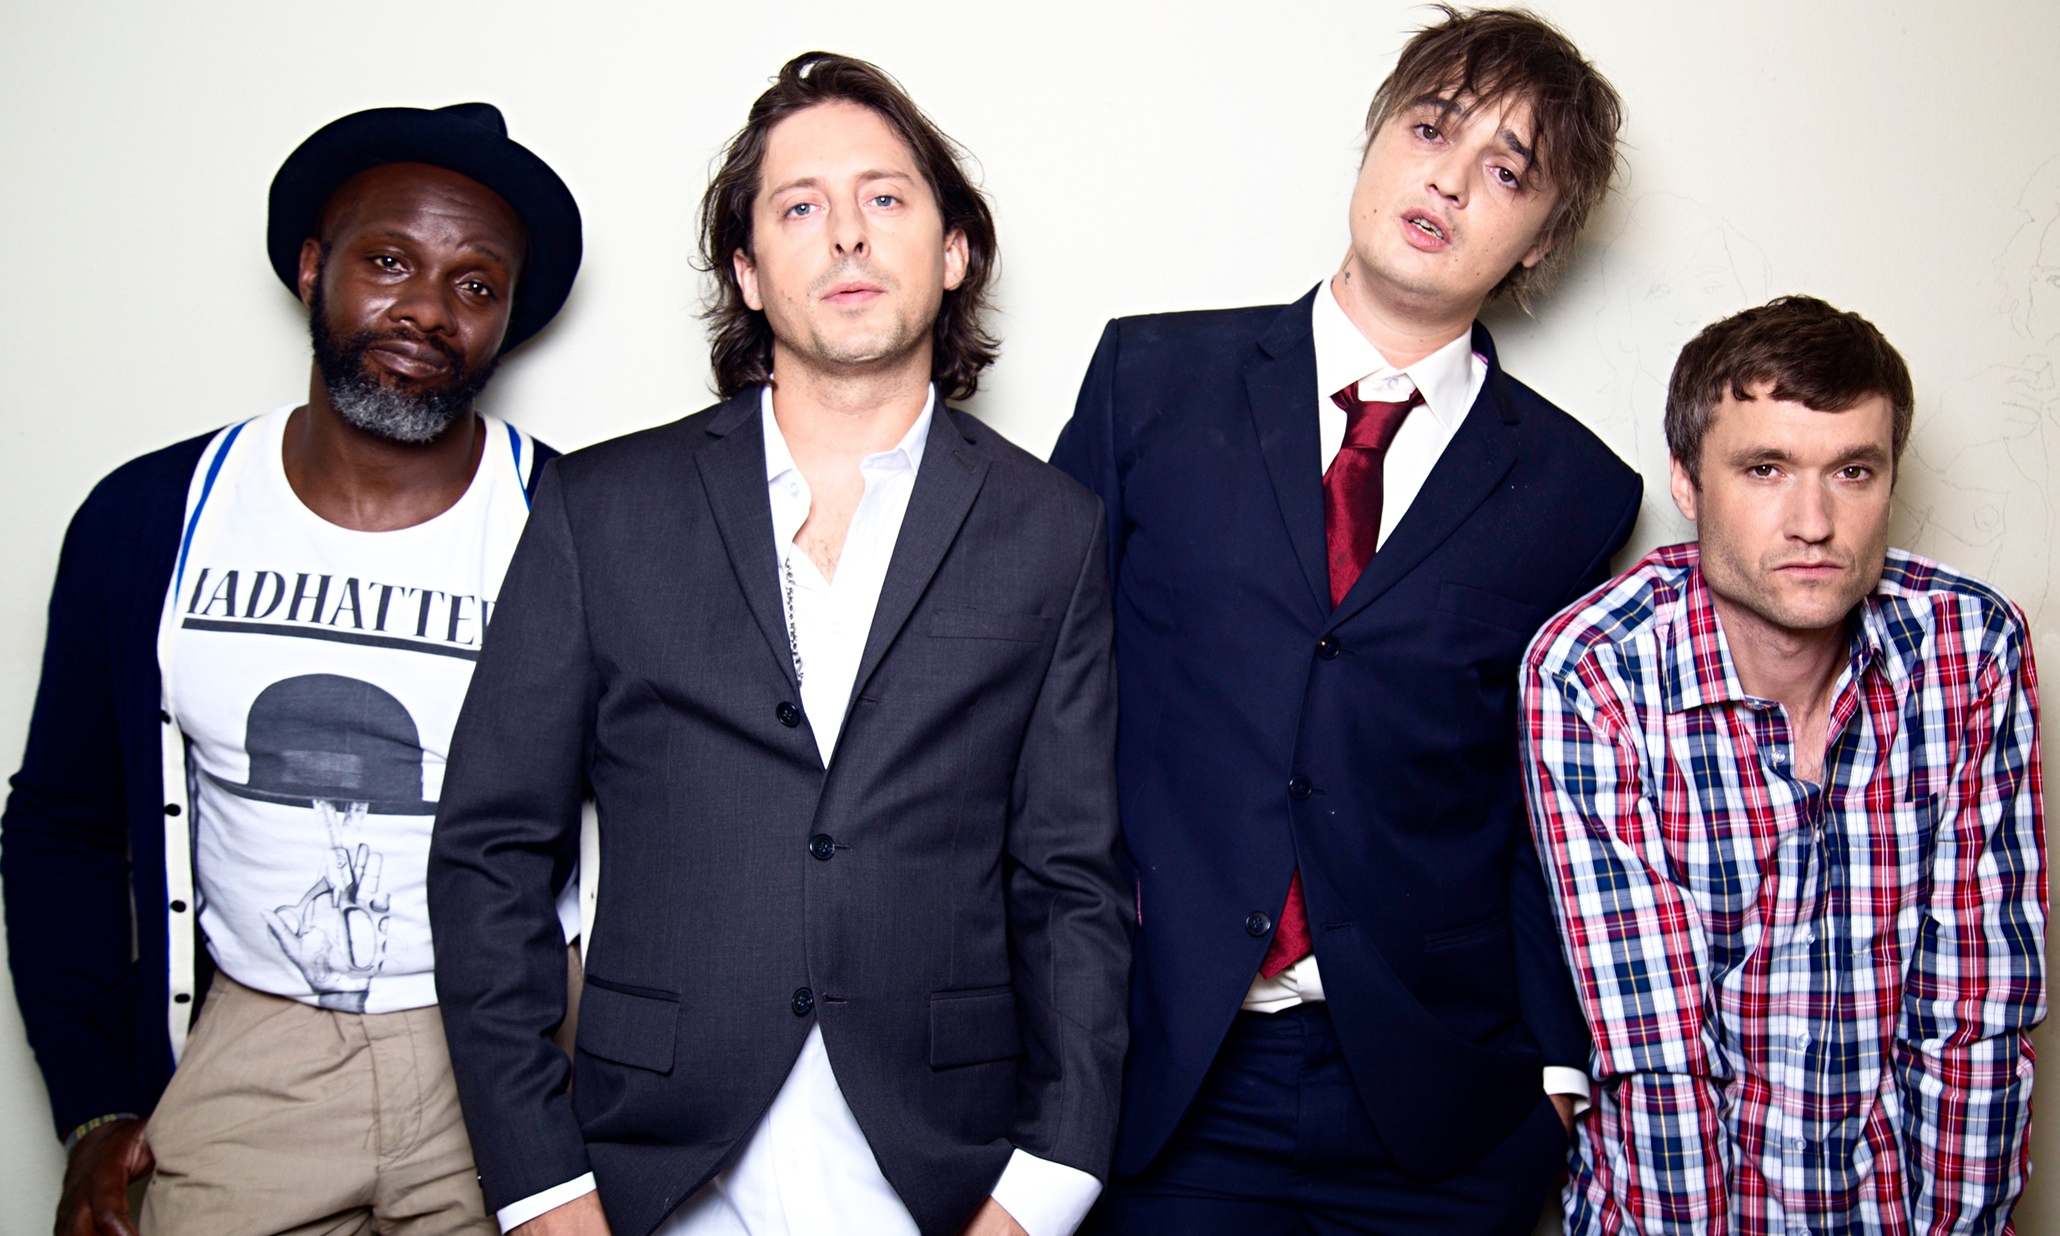 https://i0.wp.com/static.guim.co.uk/sys-images/Observer/Pix/pictures/2015/9/1/1441115844116/The-Libertines-CDs-009.jpg